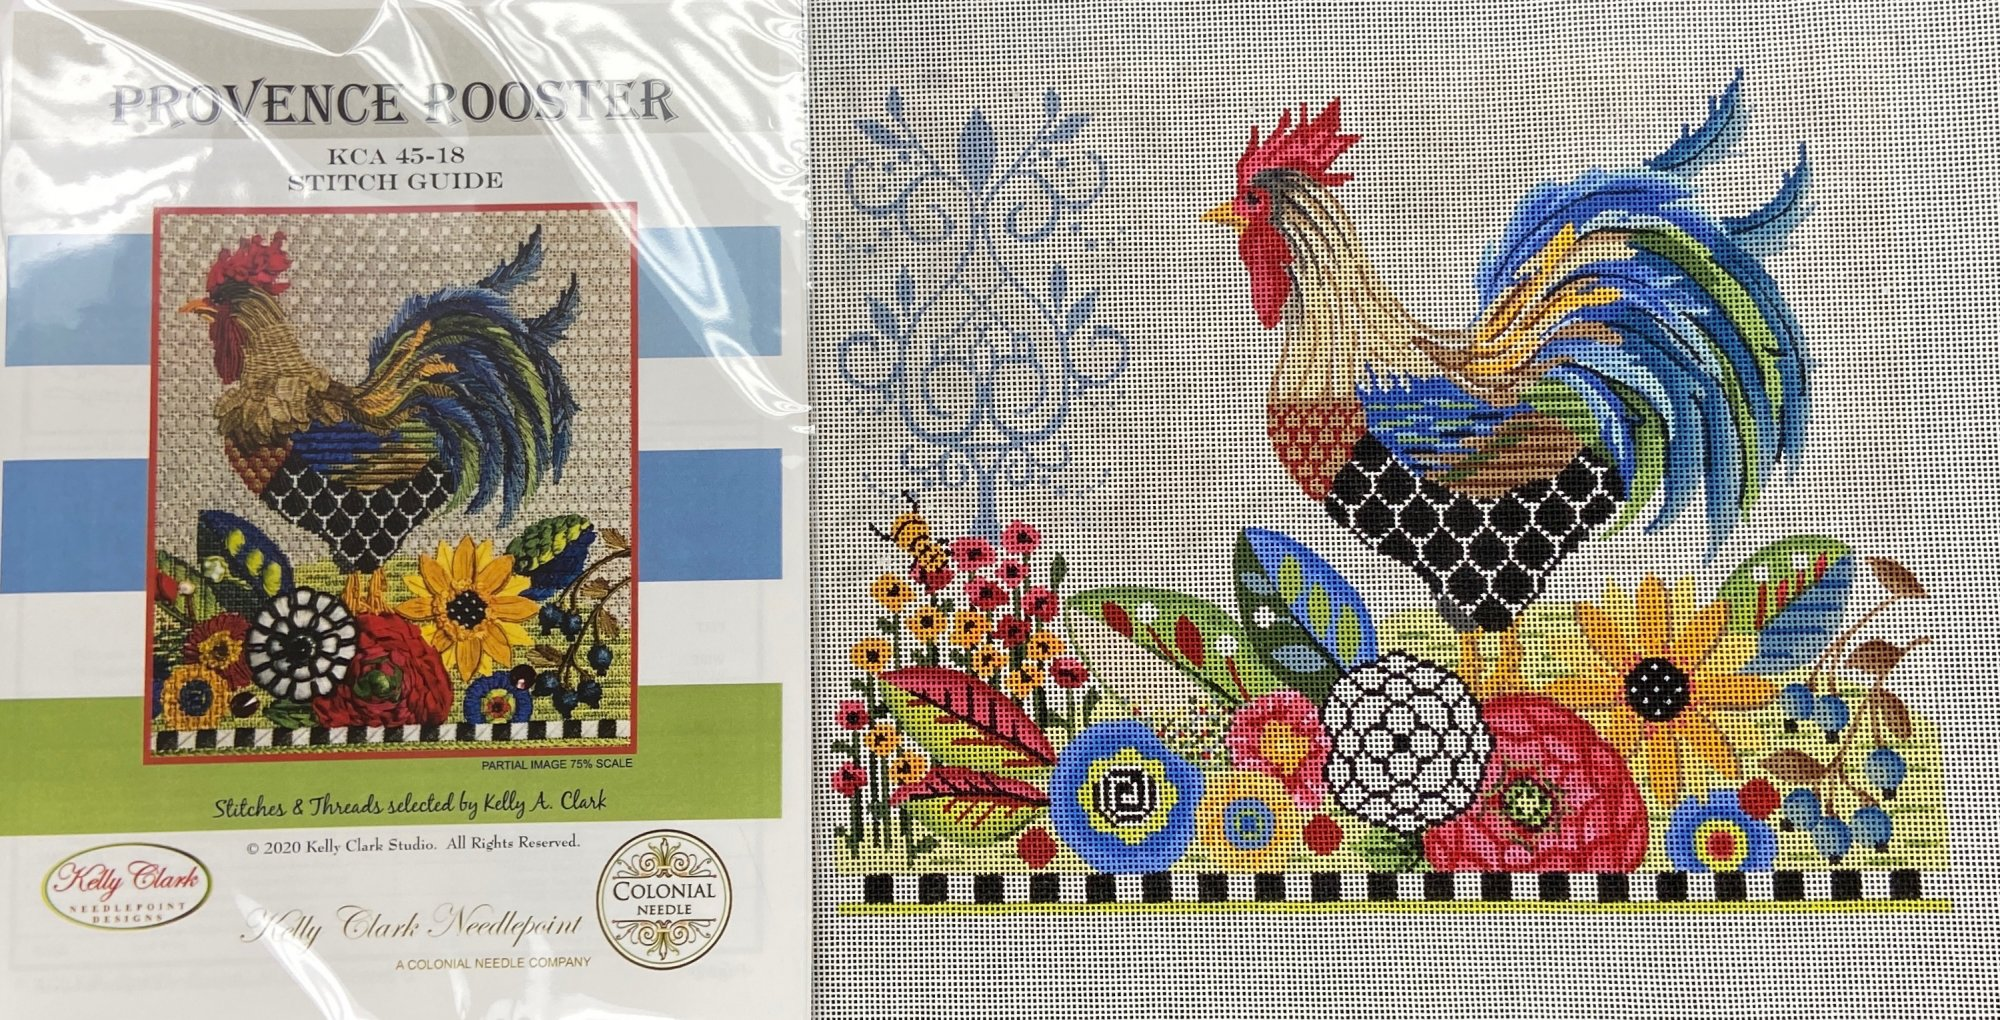 KCKCA45 Provence Rooster with Stitch Guide and Embellishments Colonial